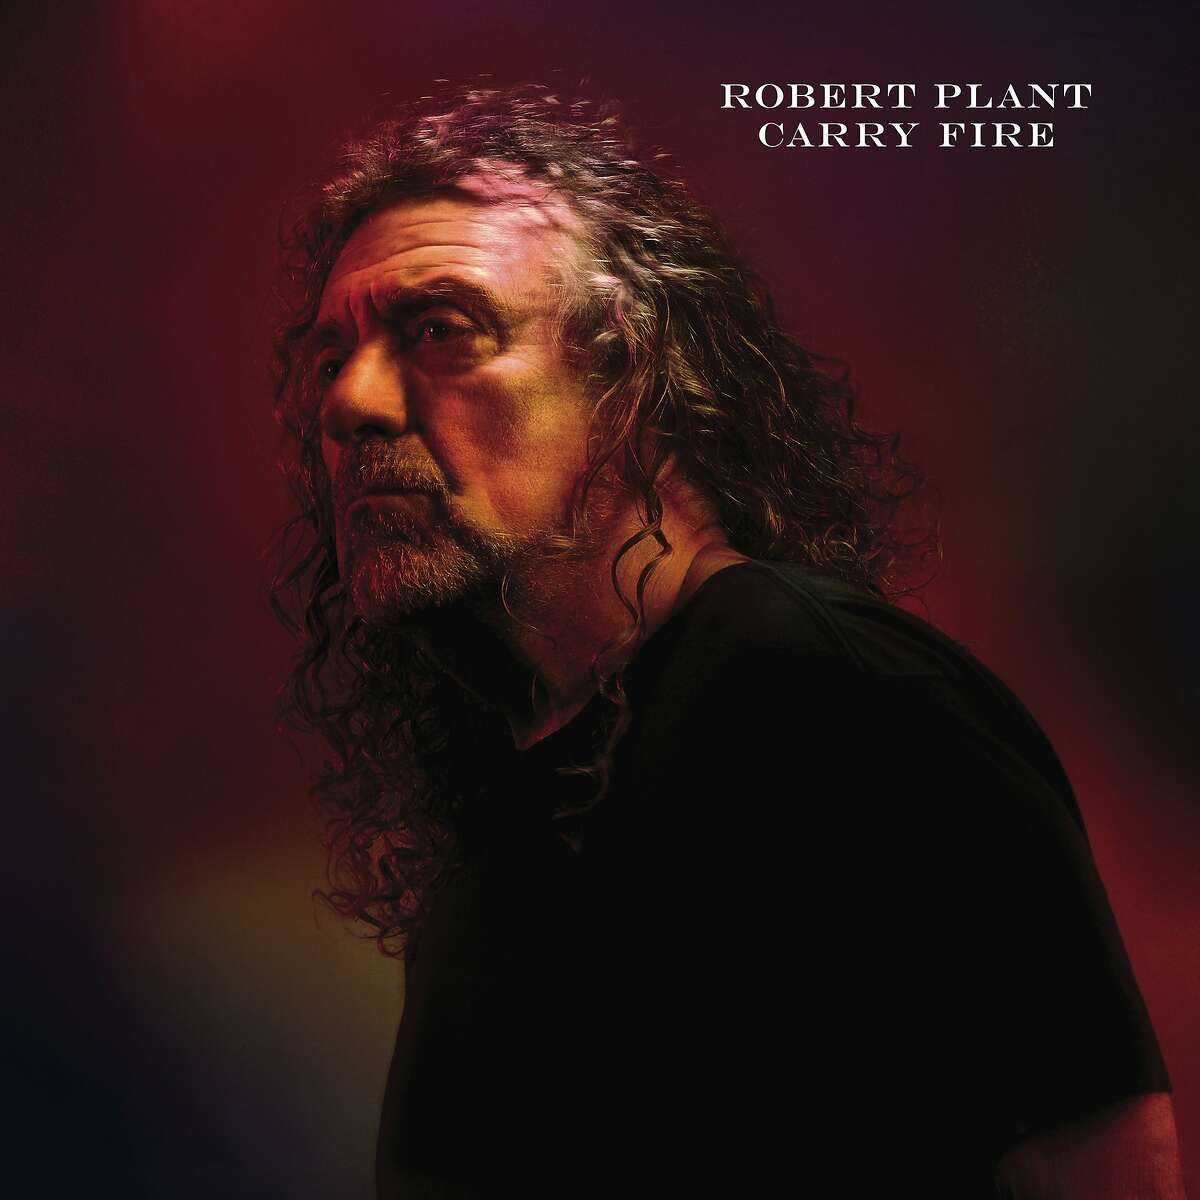 Robert Plant's 11th solo album is 'Carry Fire'